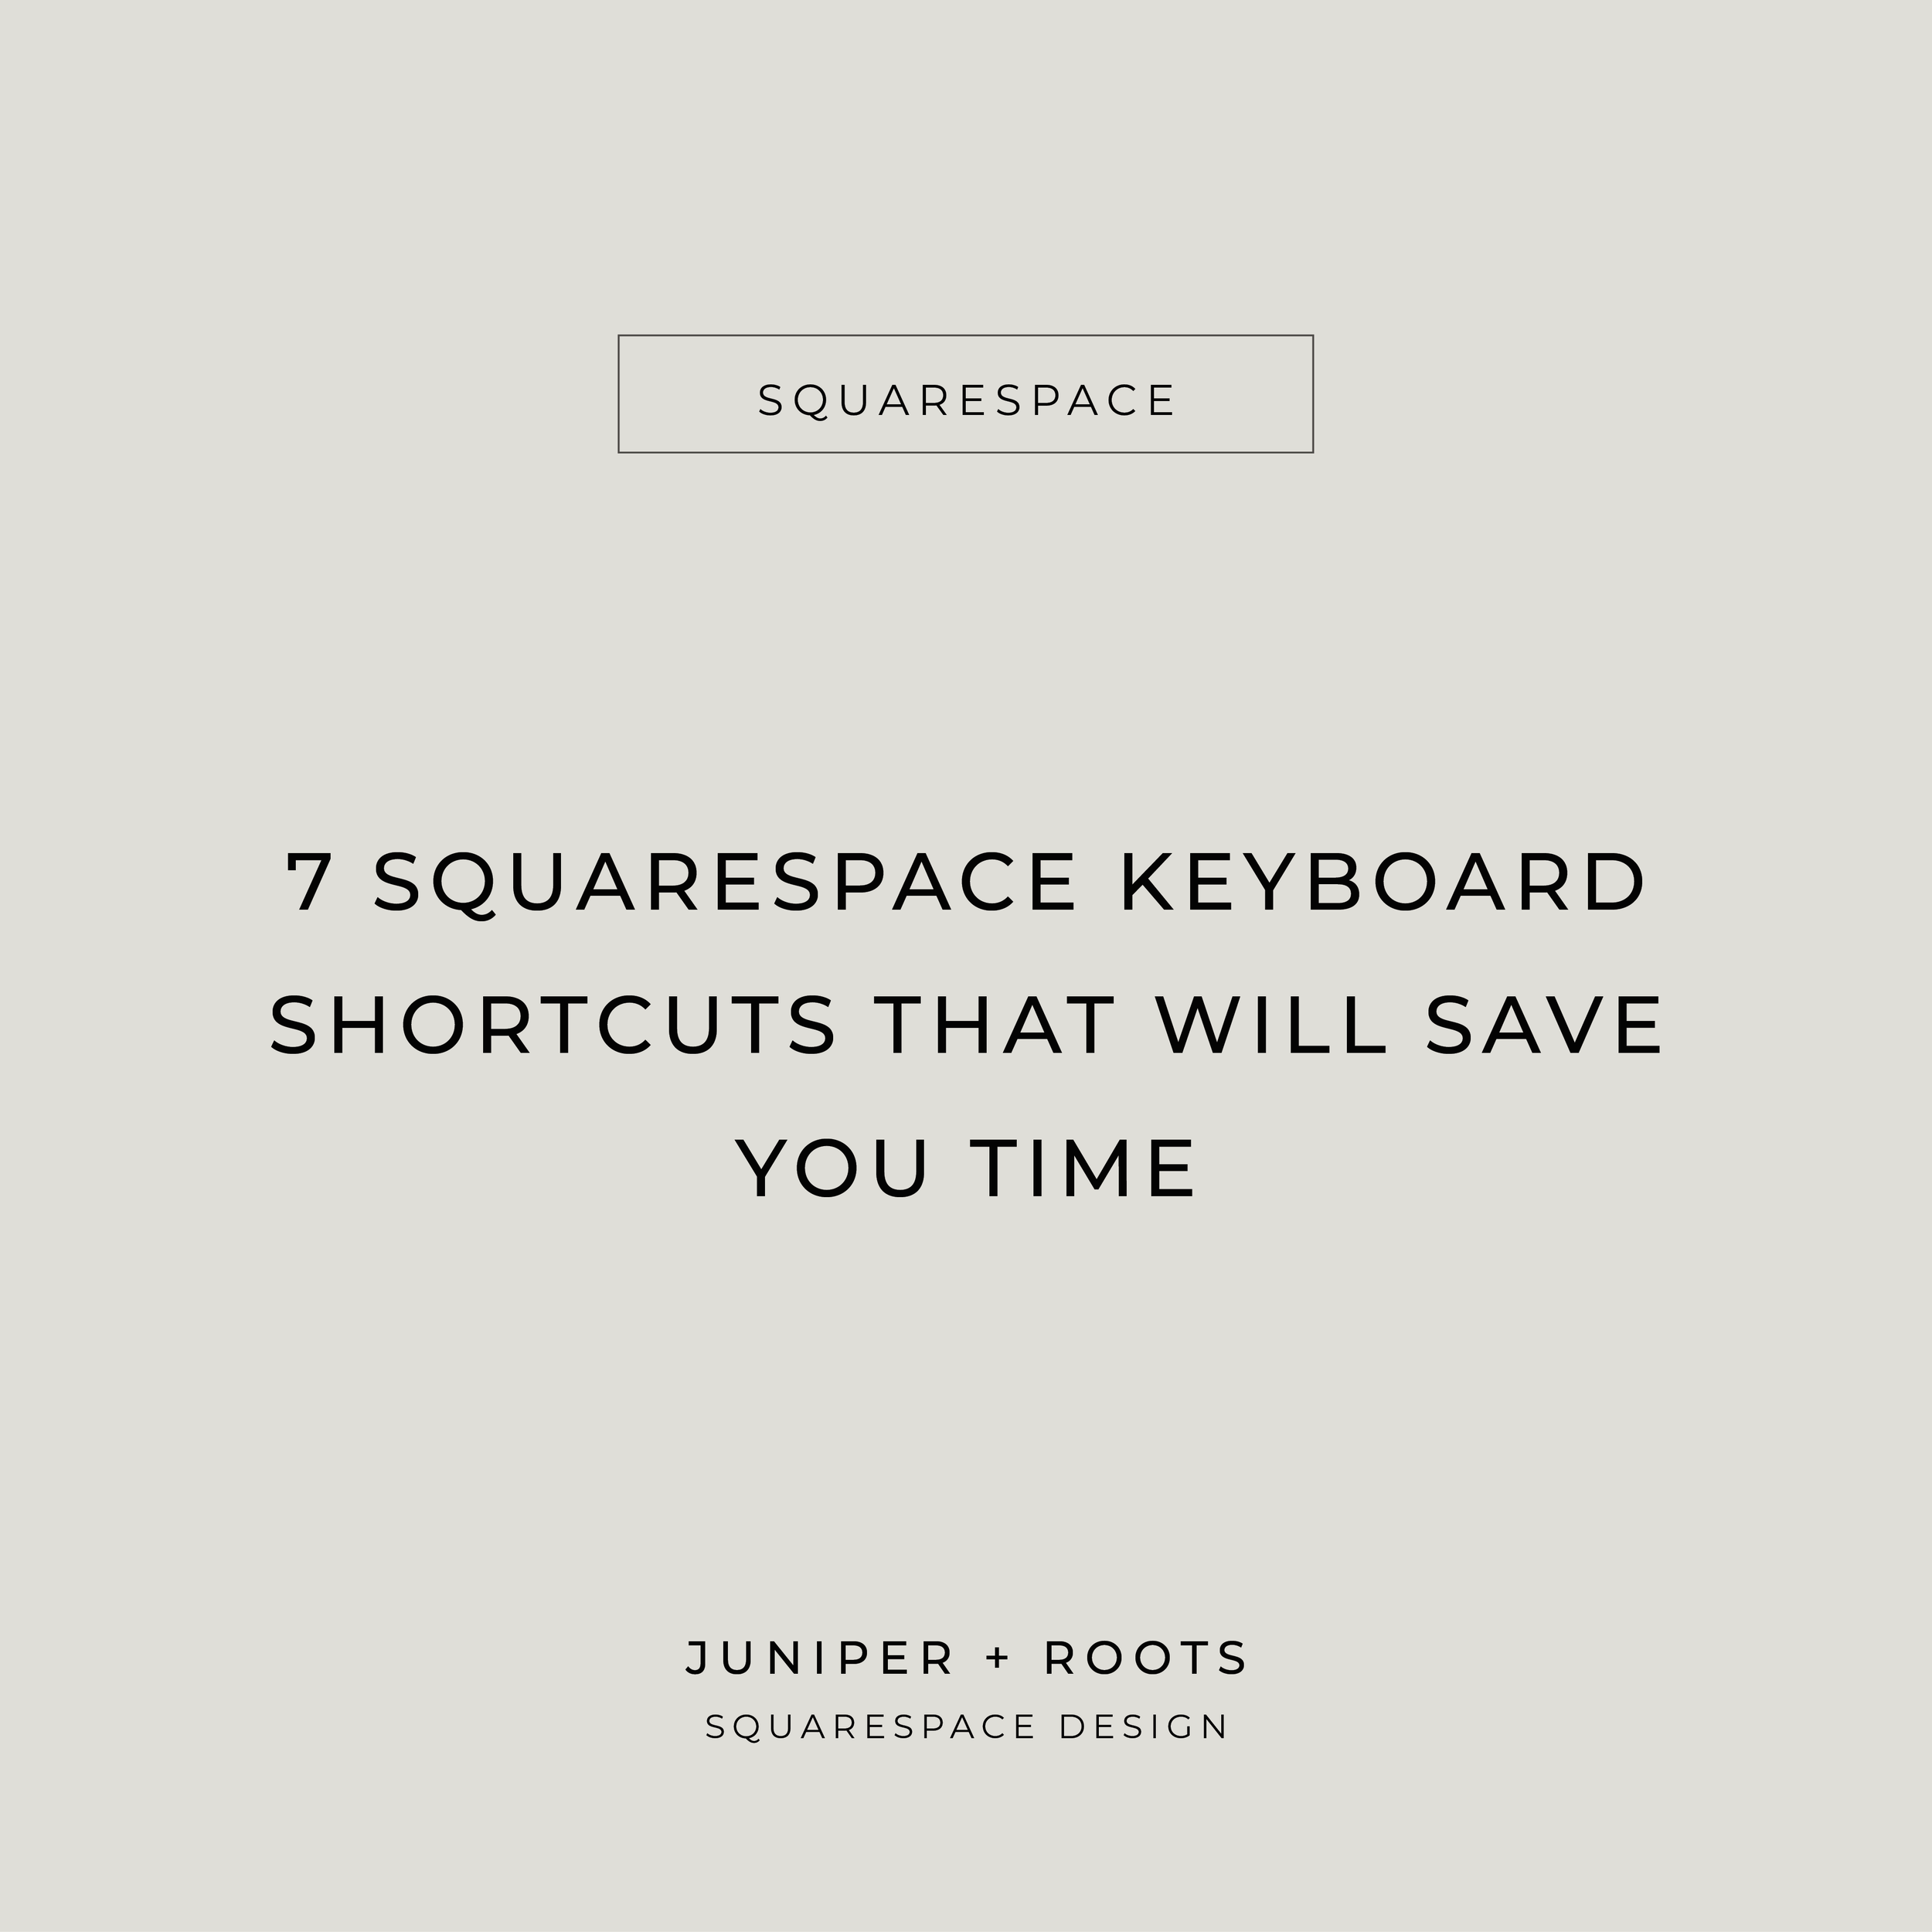 7 Squarespace Keyboard Shortcuts That Will Save You Time